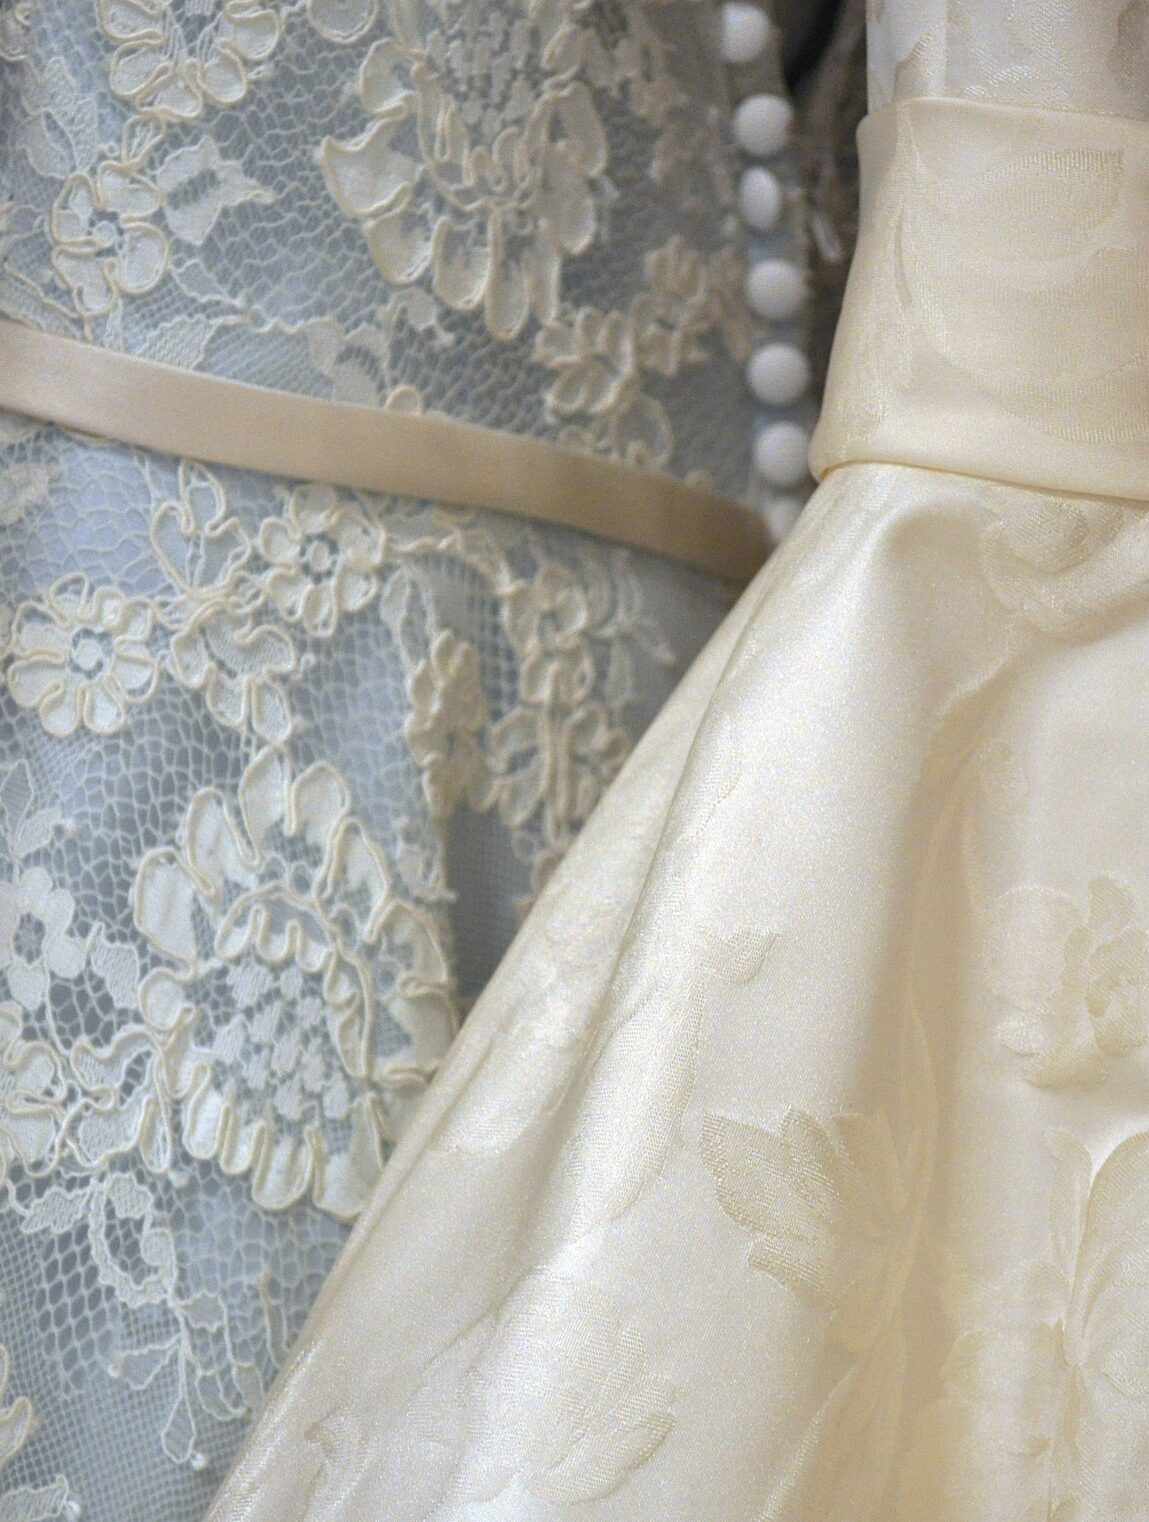 clothing rack with blue and cream colored wedding dresses